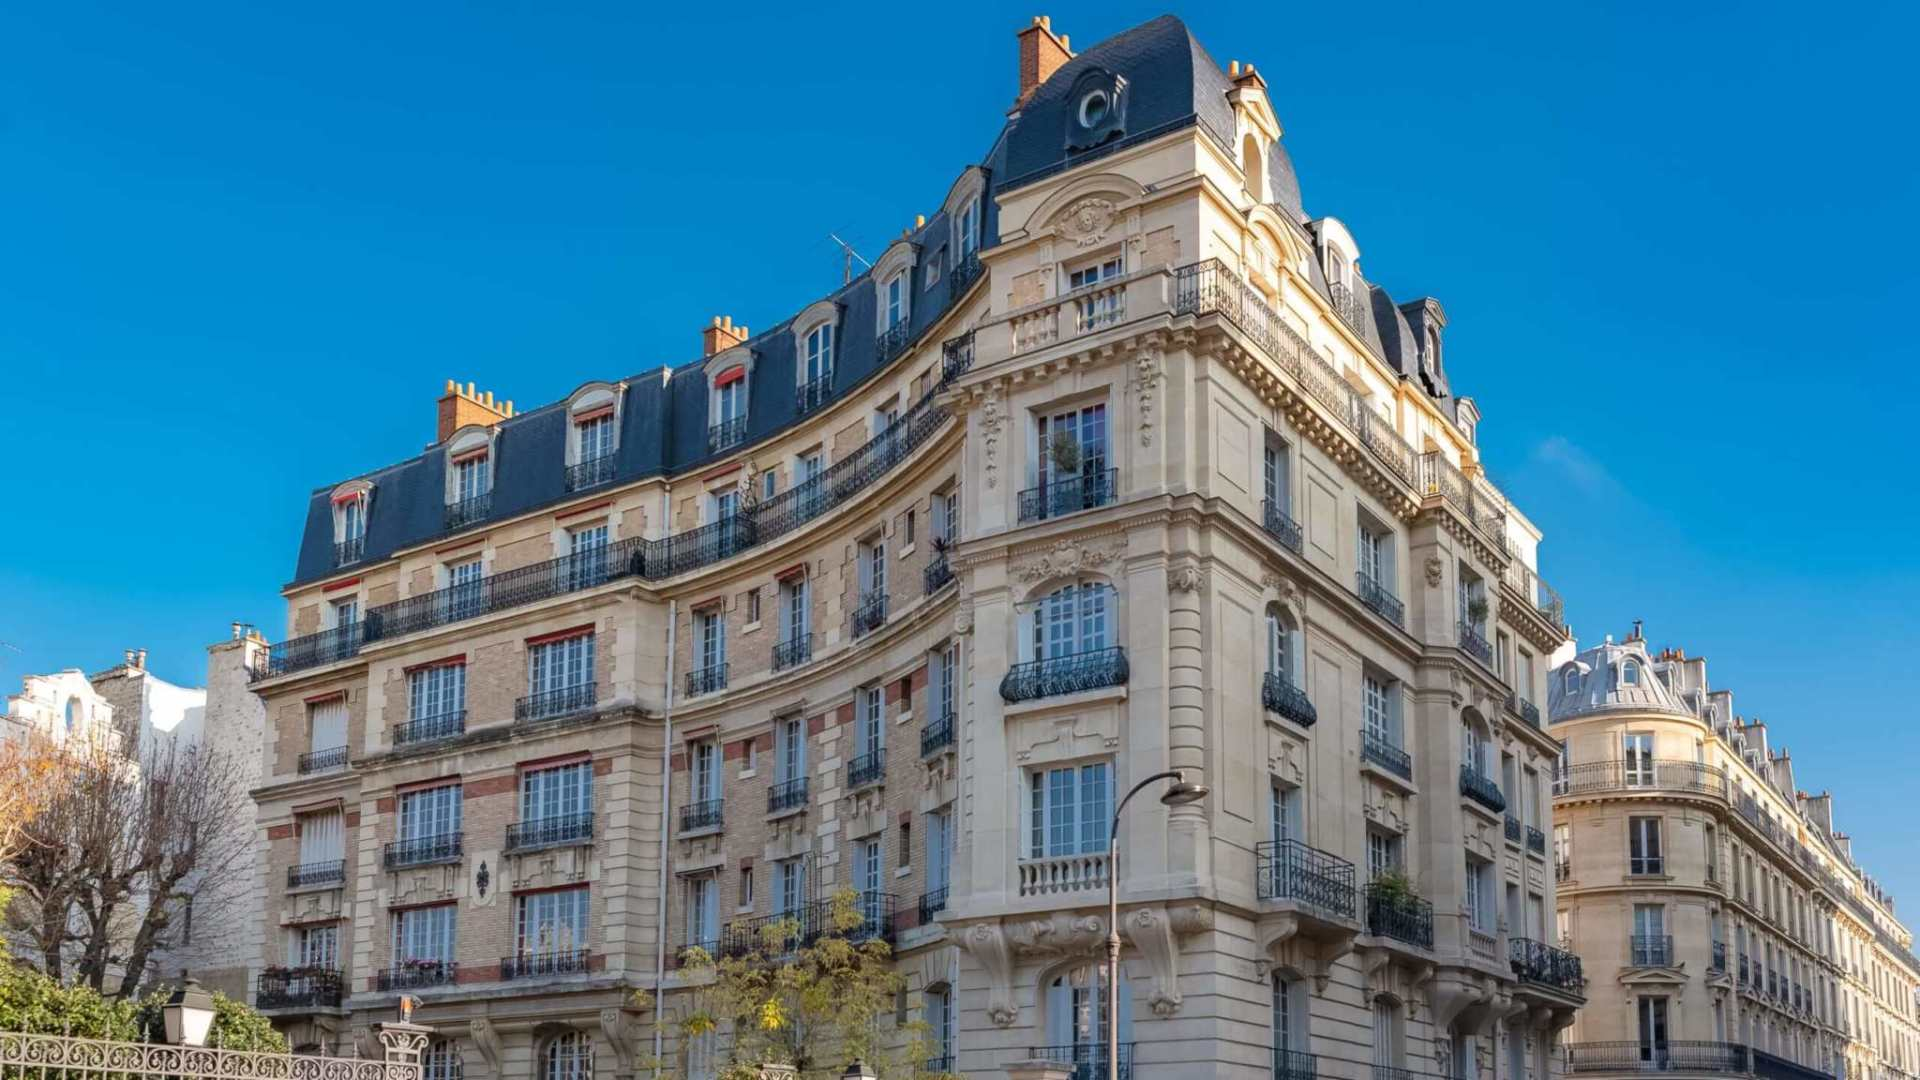 Diagnostics immobiliers - Immeuble Paris 16ème